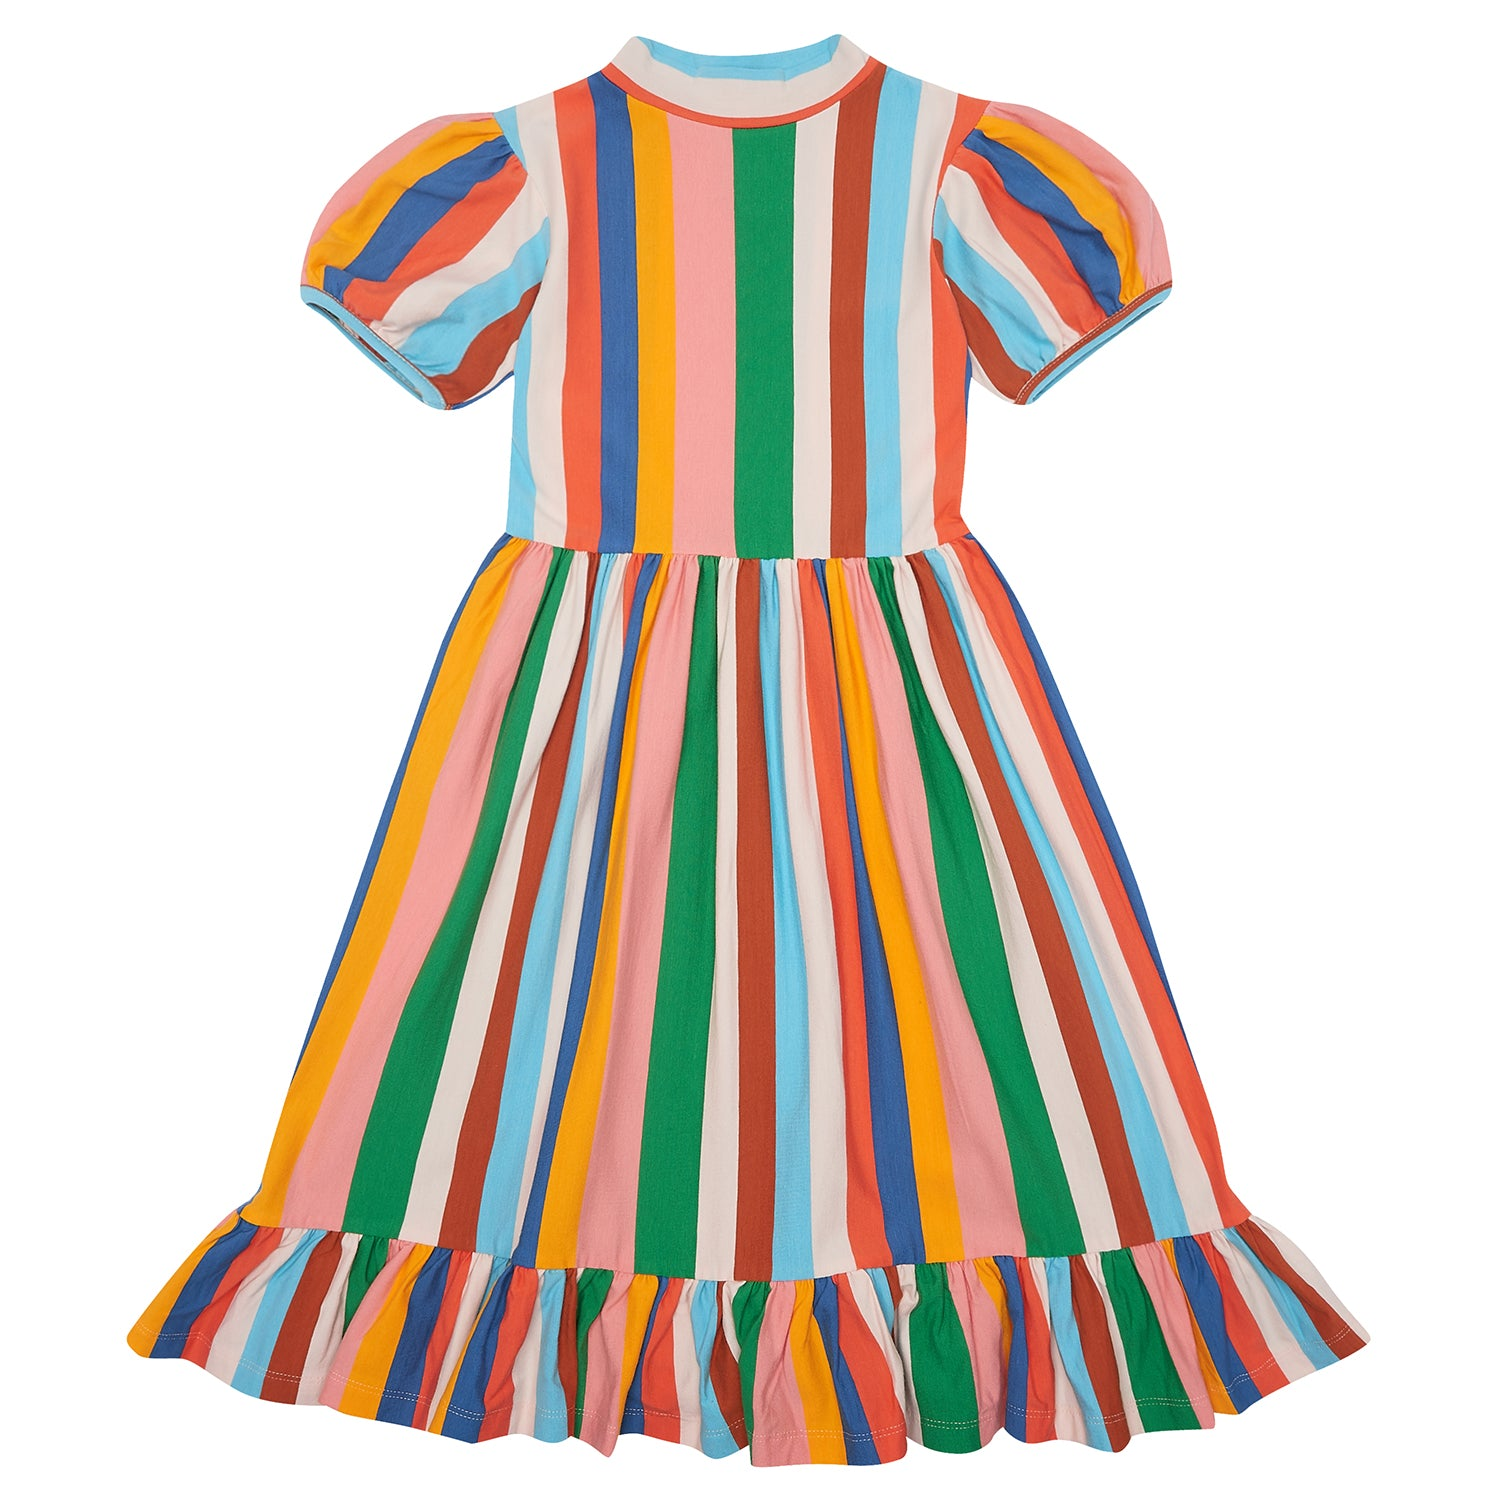 yoya, kids, girls, the middle daughter, summer, lightweight, casual, ruffle hem, short sleeved, jersey cotton, midi dress